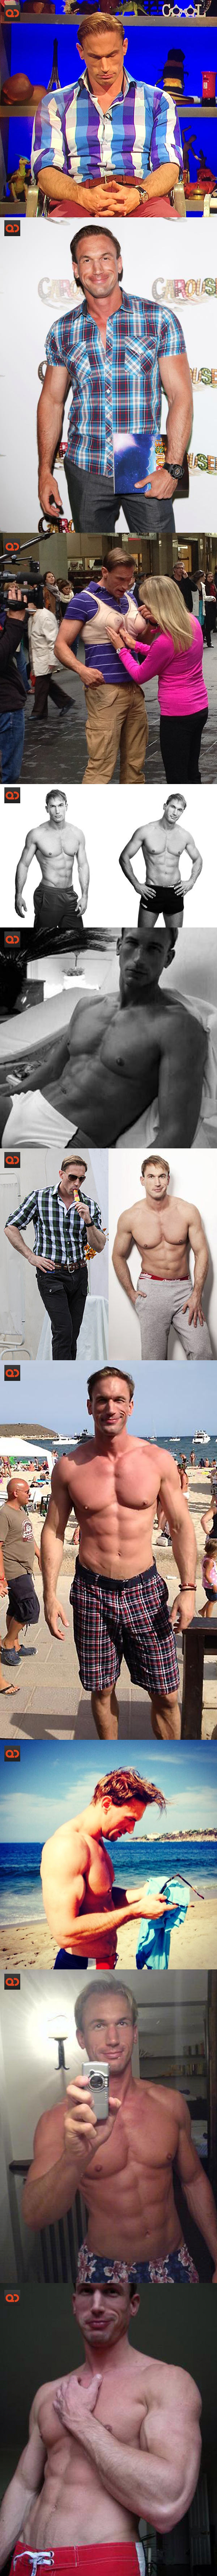 "Christian Jessen, Doctor And TV Presenter From British Show ""Supersize Vs Superskinny"", Alleged Dick Pics Hit!"